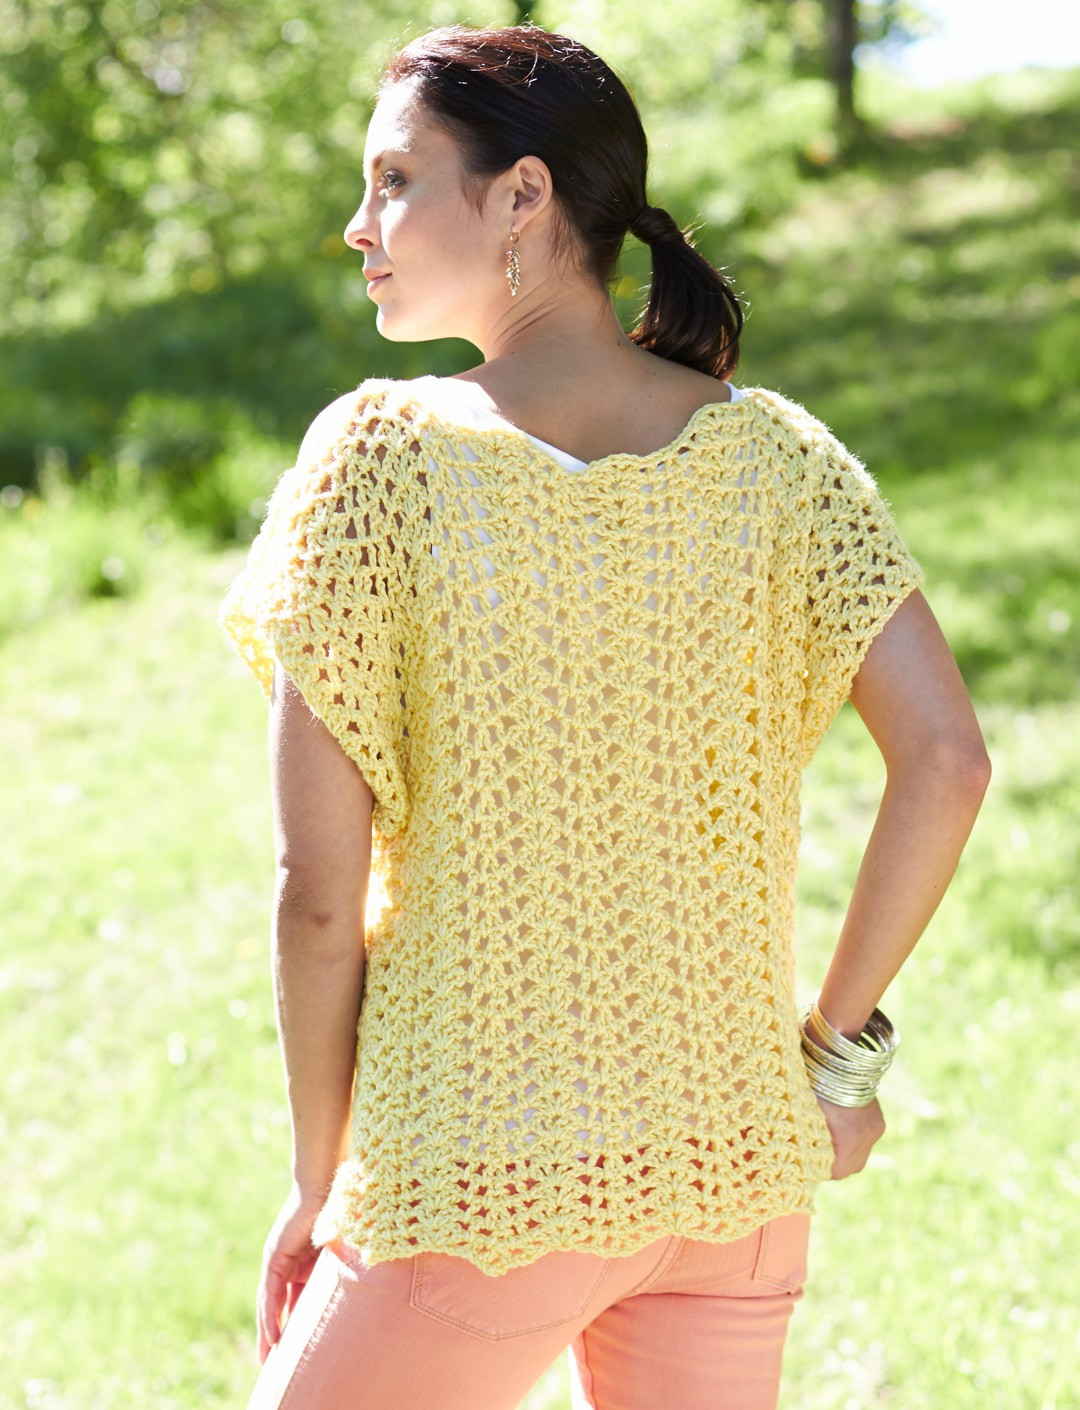 Best Of Pattern Crochet top Crochet Shirts Of Brilliant 43 Ideas Crochet Shirts